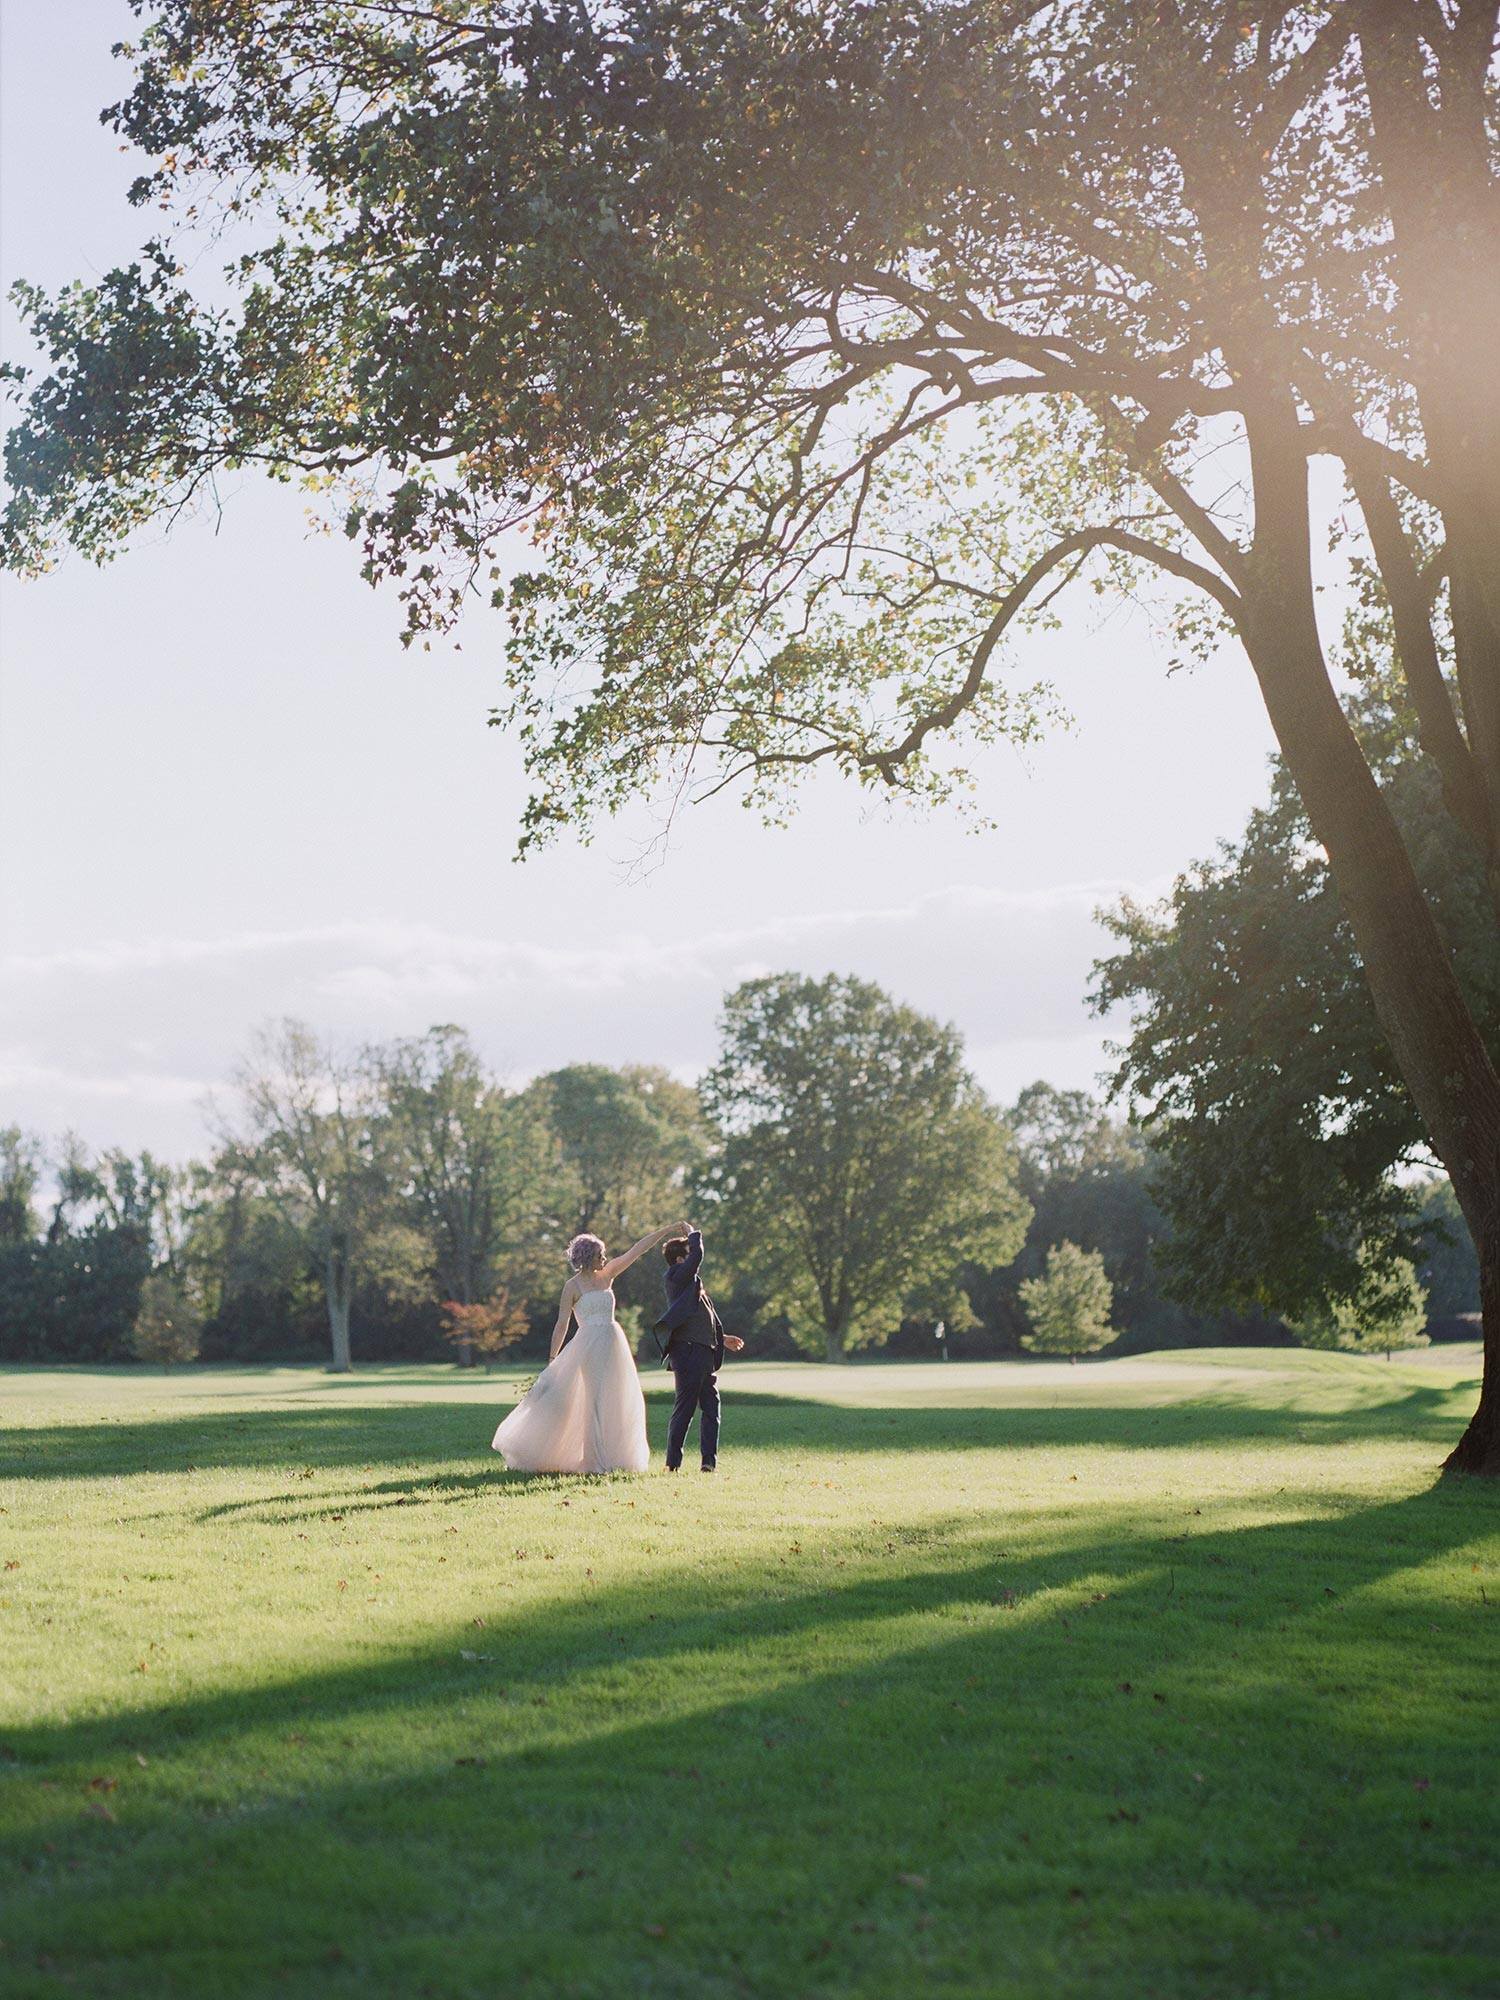 Chic Queer Wedding in West Chester Pennsylvania showing couple dancing in a field Judson Rappaport Photography